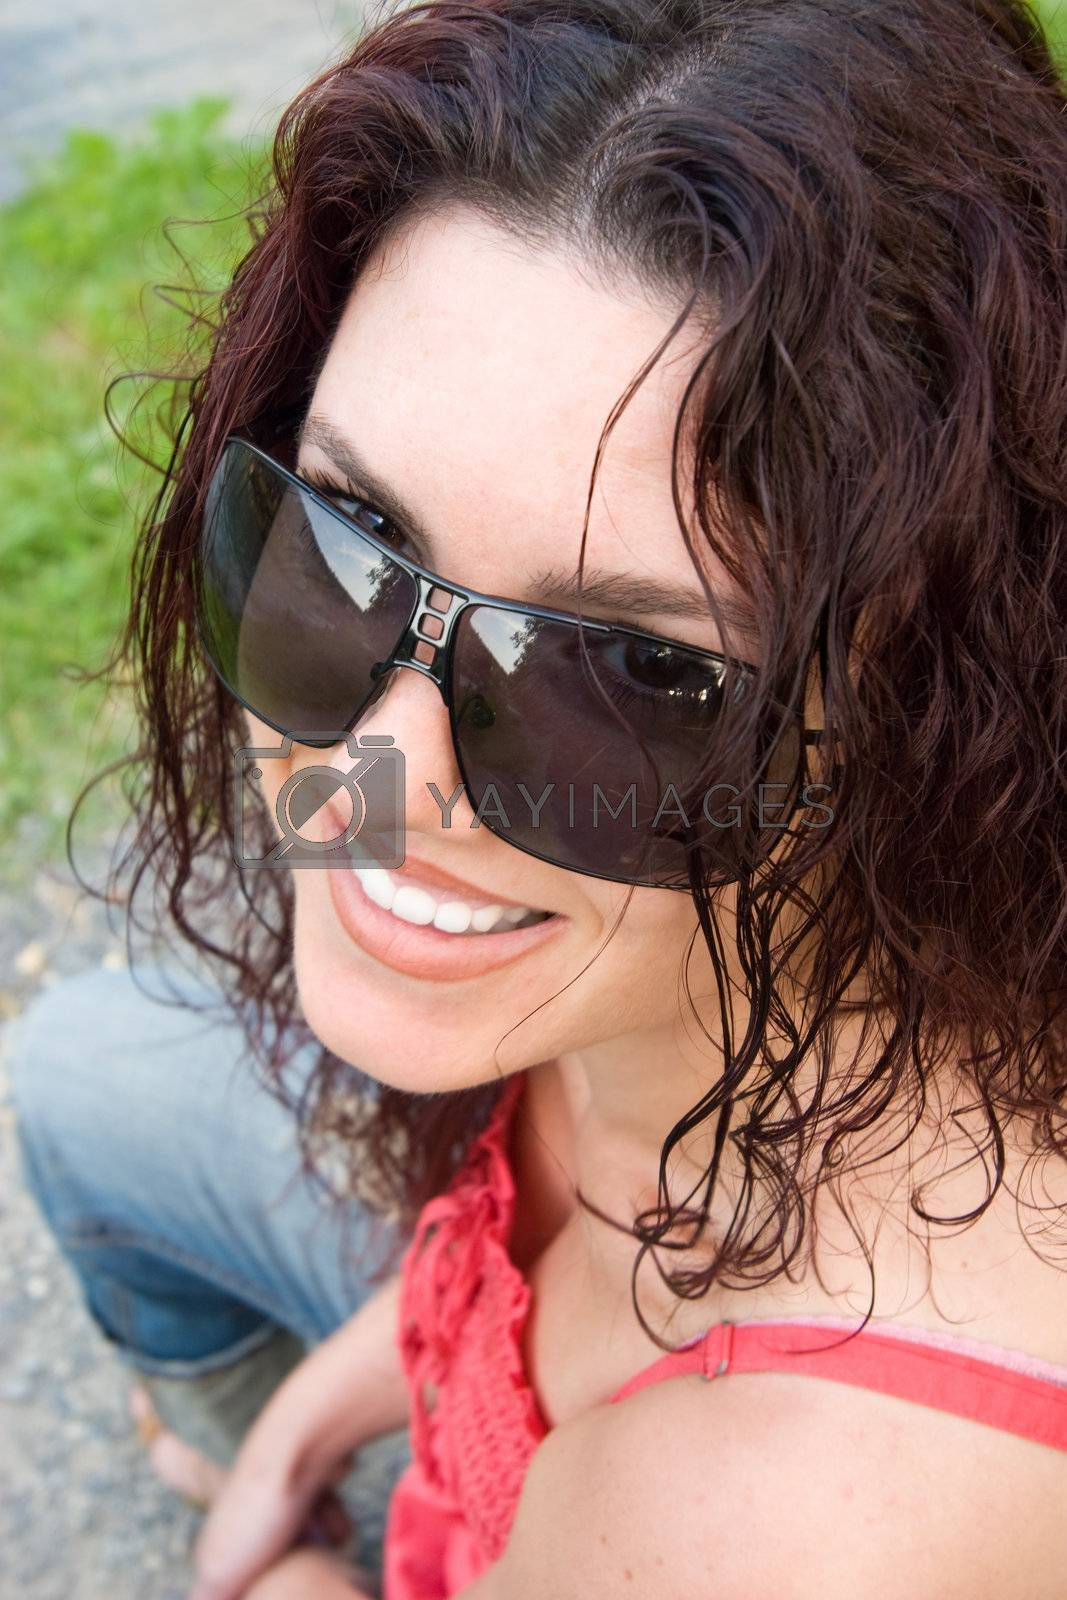 Young woman wearing sunglasses, with a wide smile.